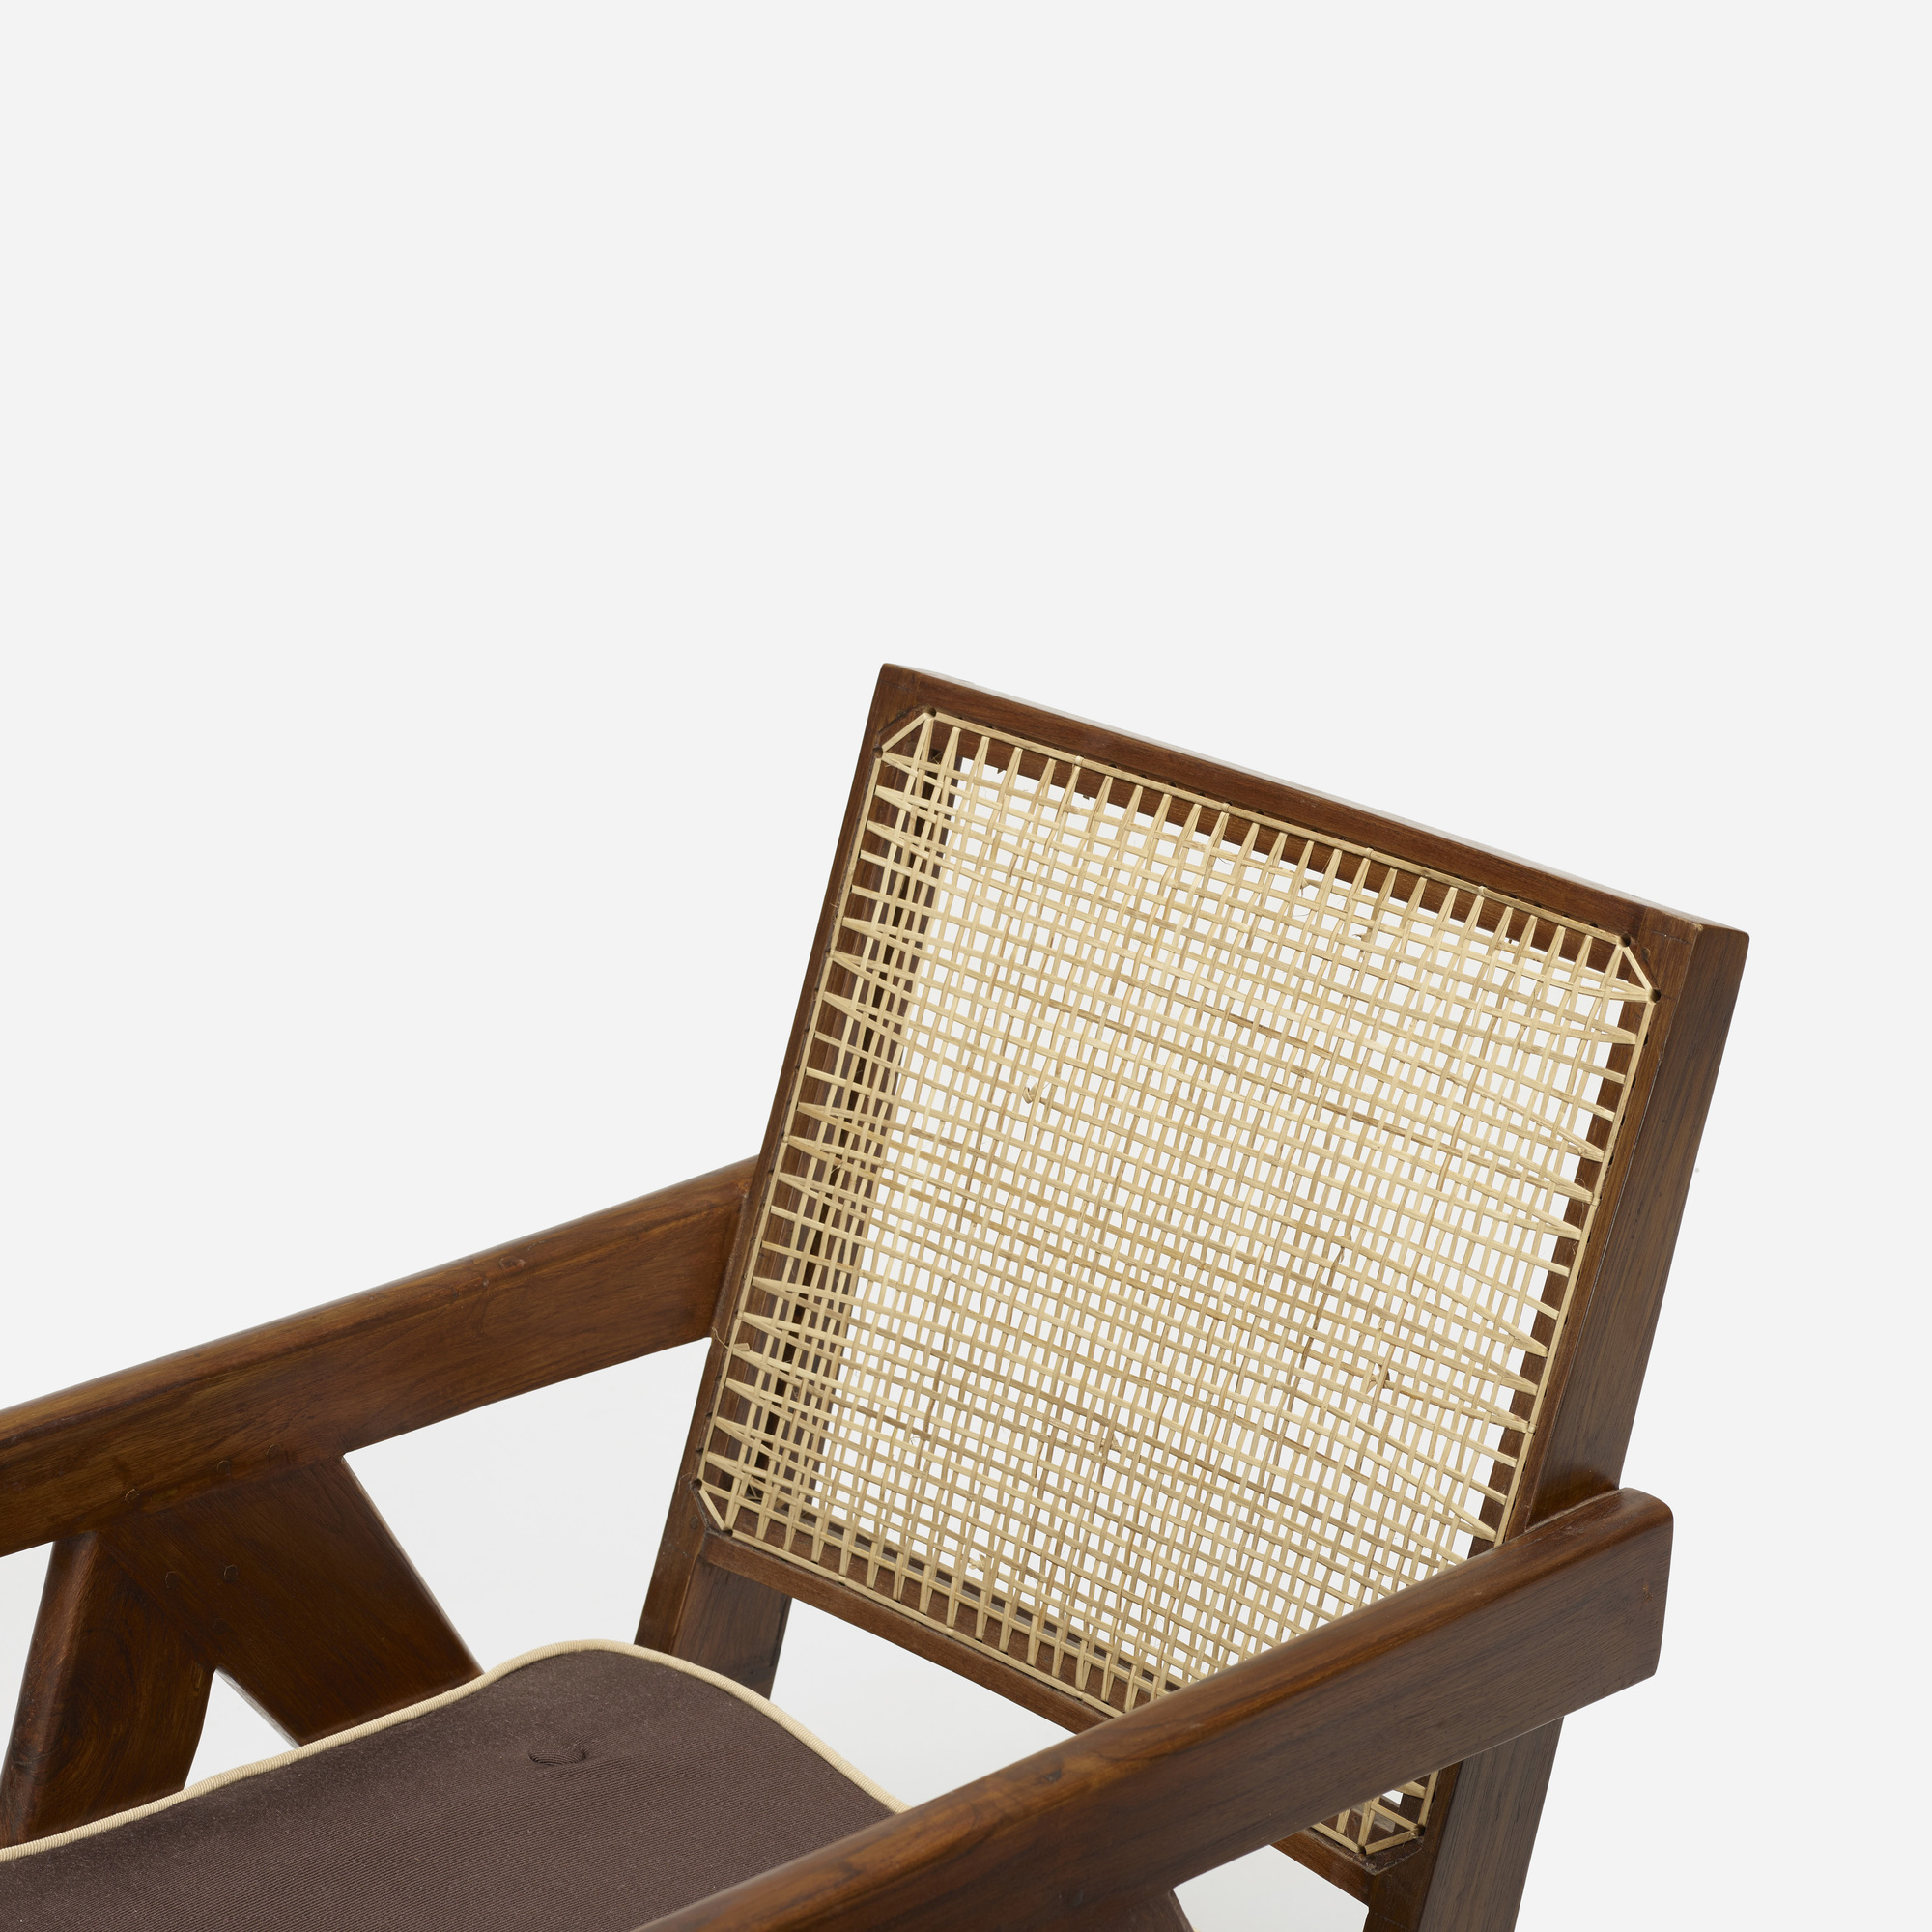 110: Pierre Jeanneret / pair of Easy armchairs from Chandiarh (3 of 3)